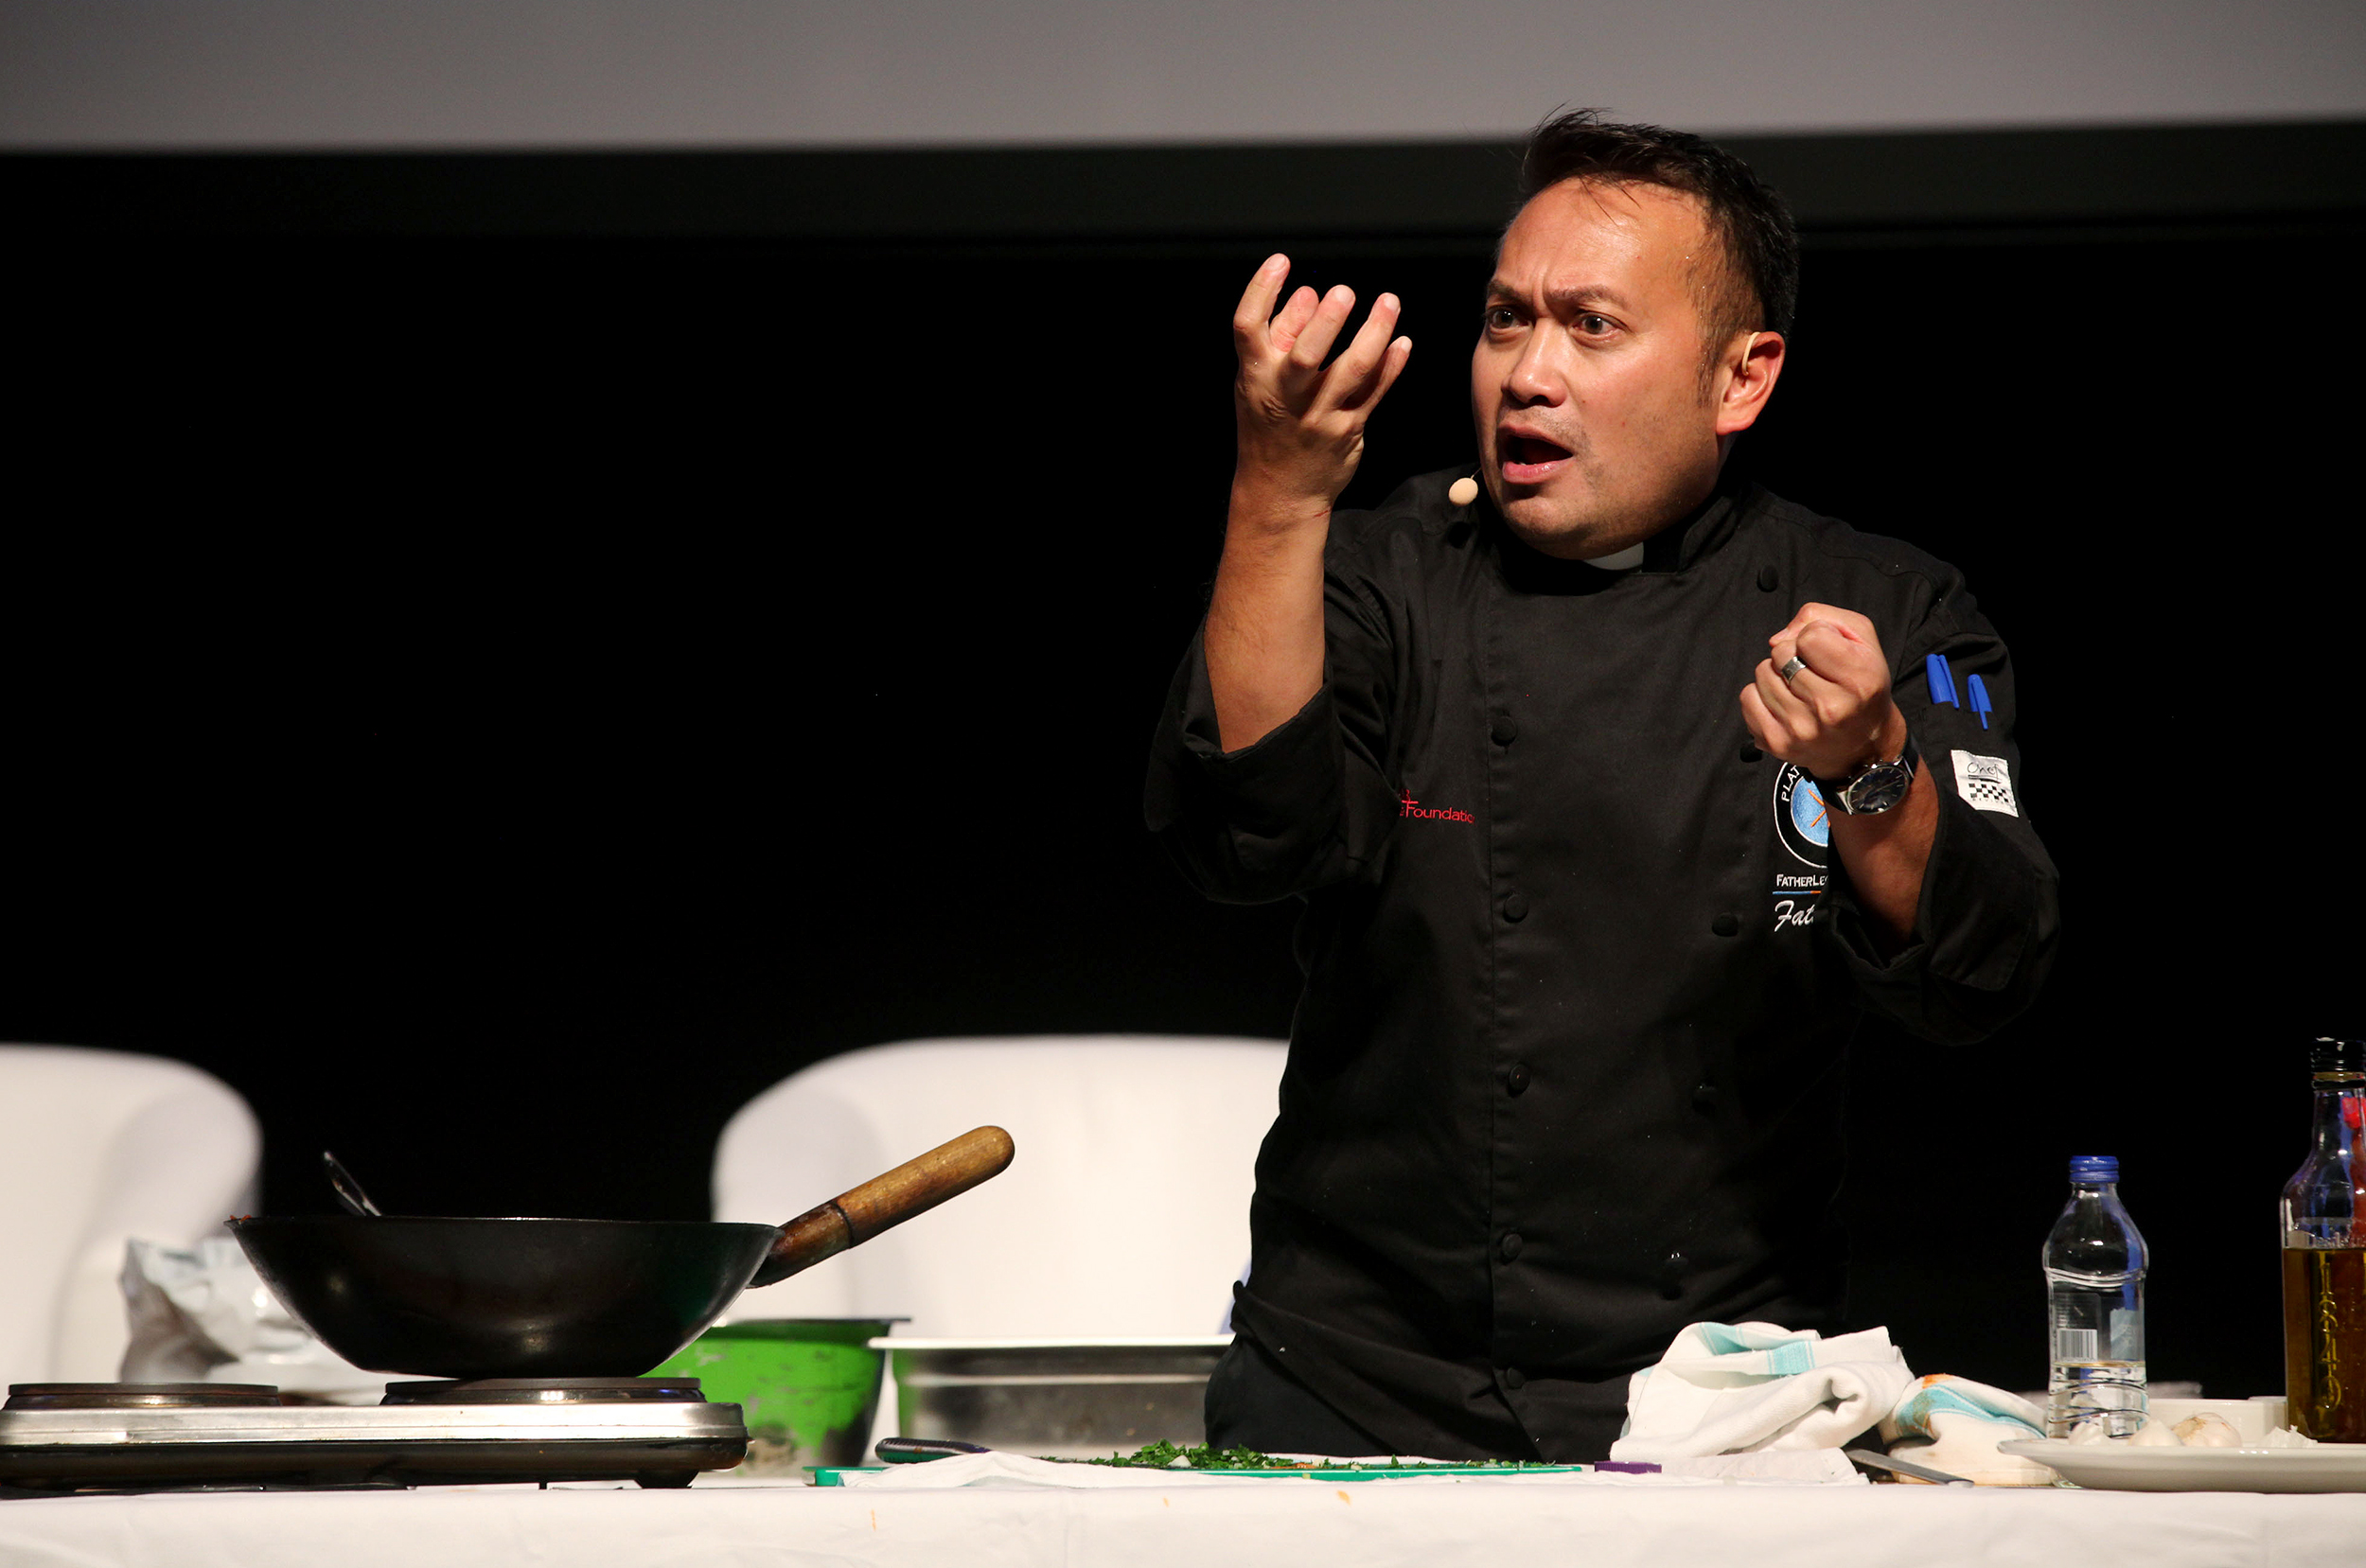 FATHER LEO COOKING